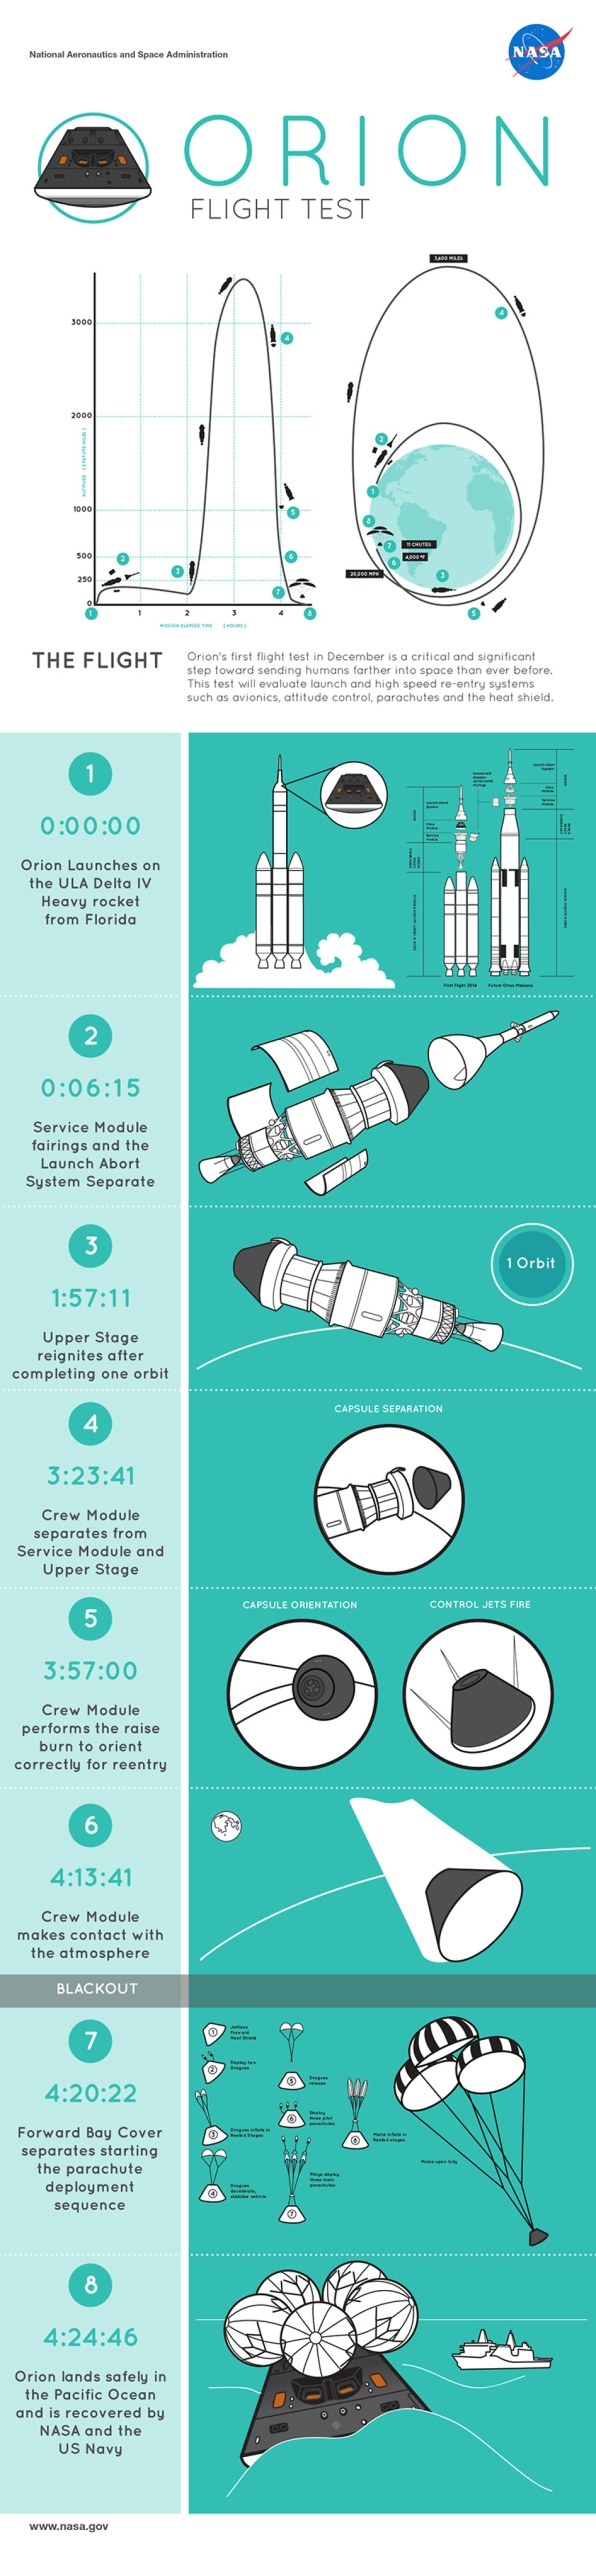 What to look for during Orion's EFT-1 flight. Credit: NASA/Aimee Crane.